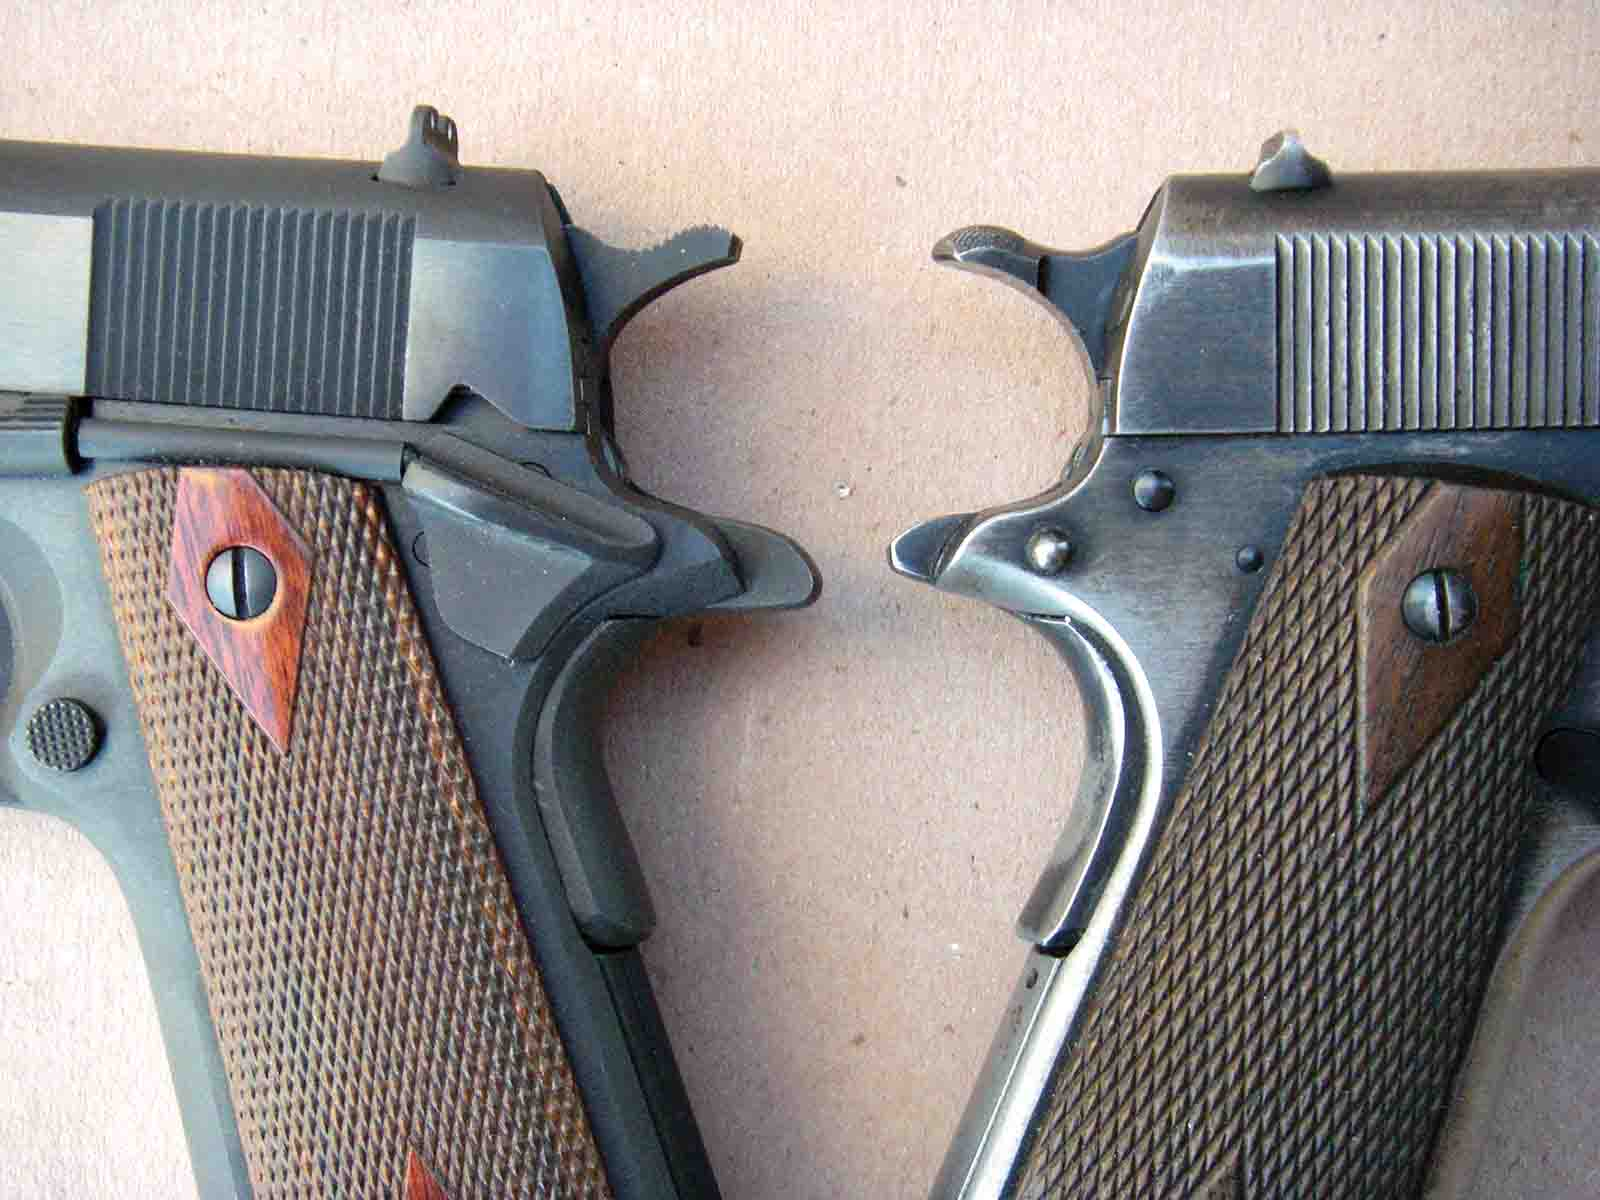 The current pistol's grip safety (left) is not a high-position pattern, but it helps prevent pinching of the web of the hand.